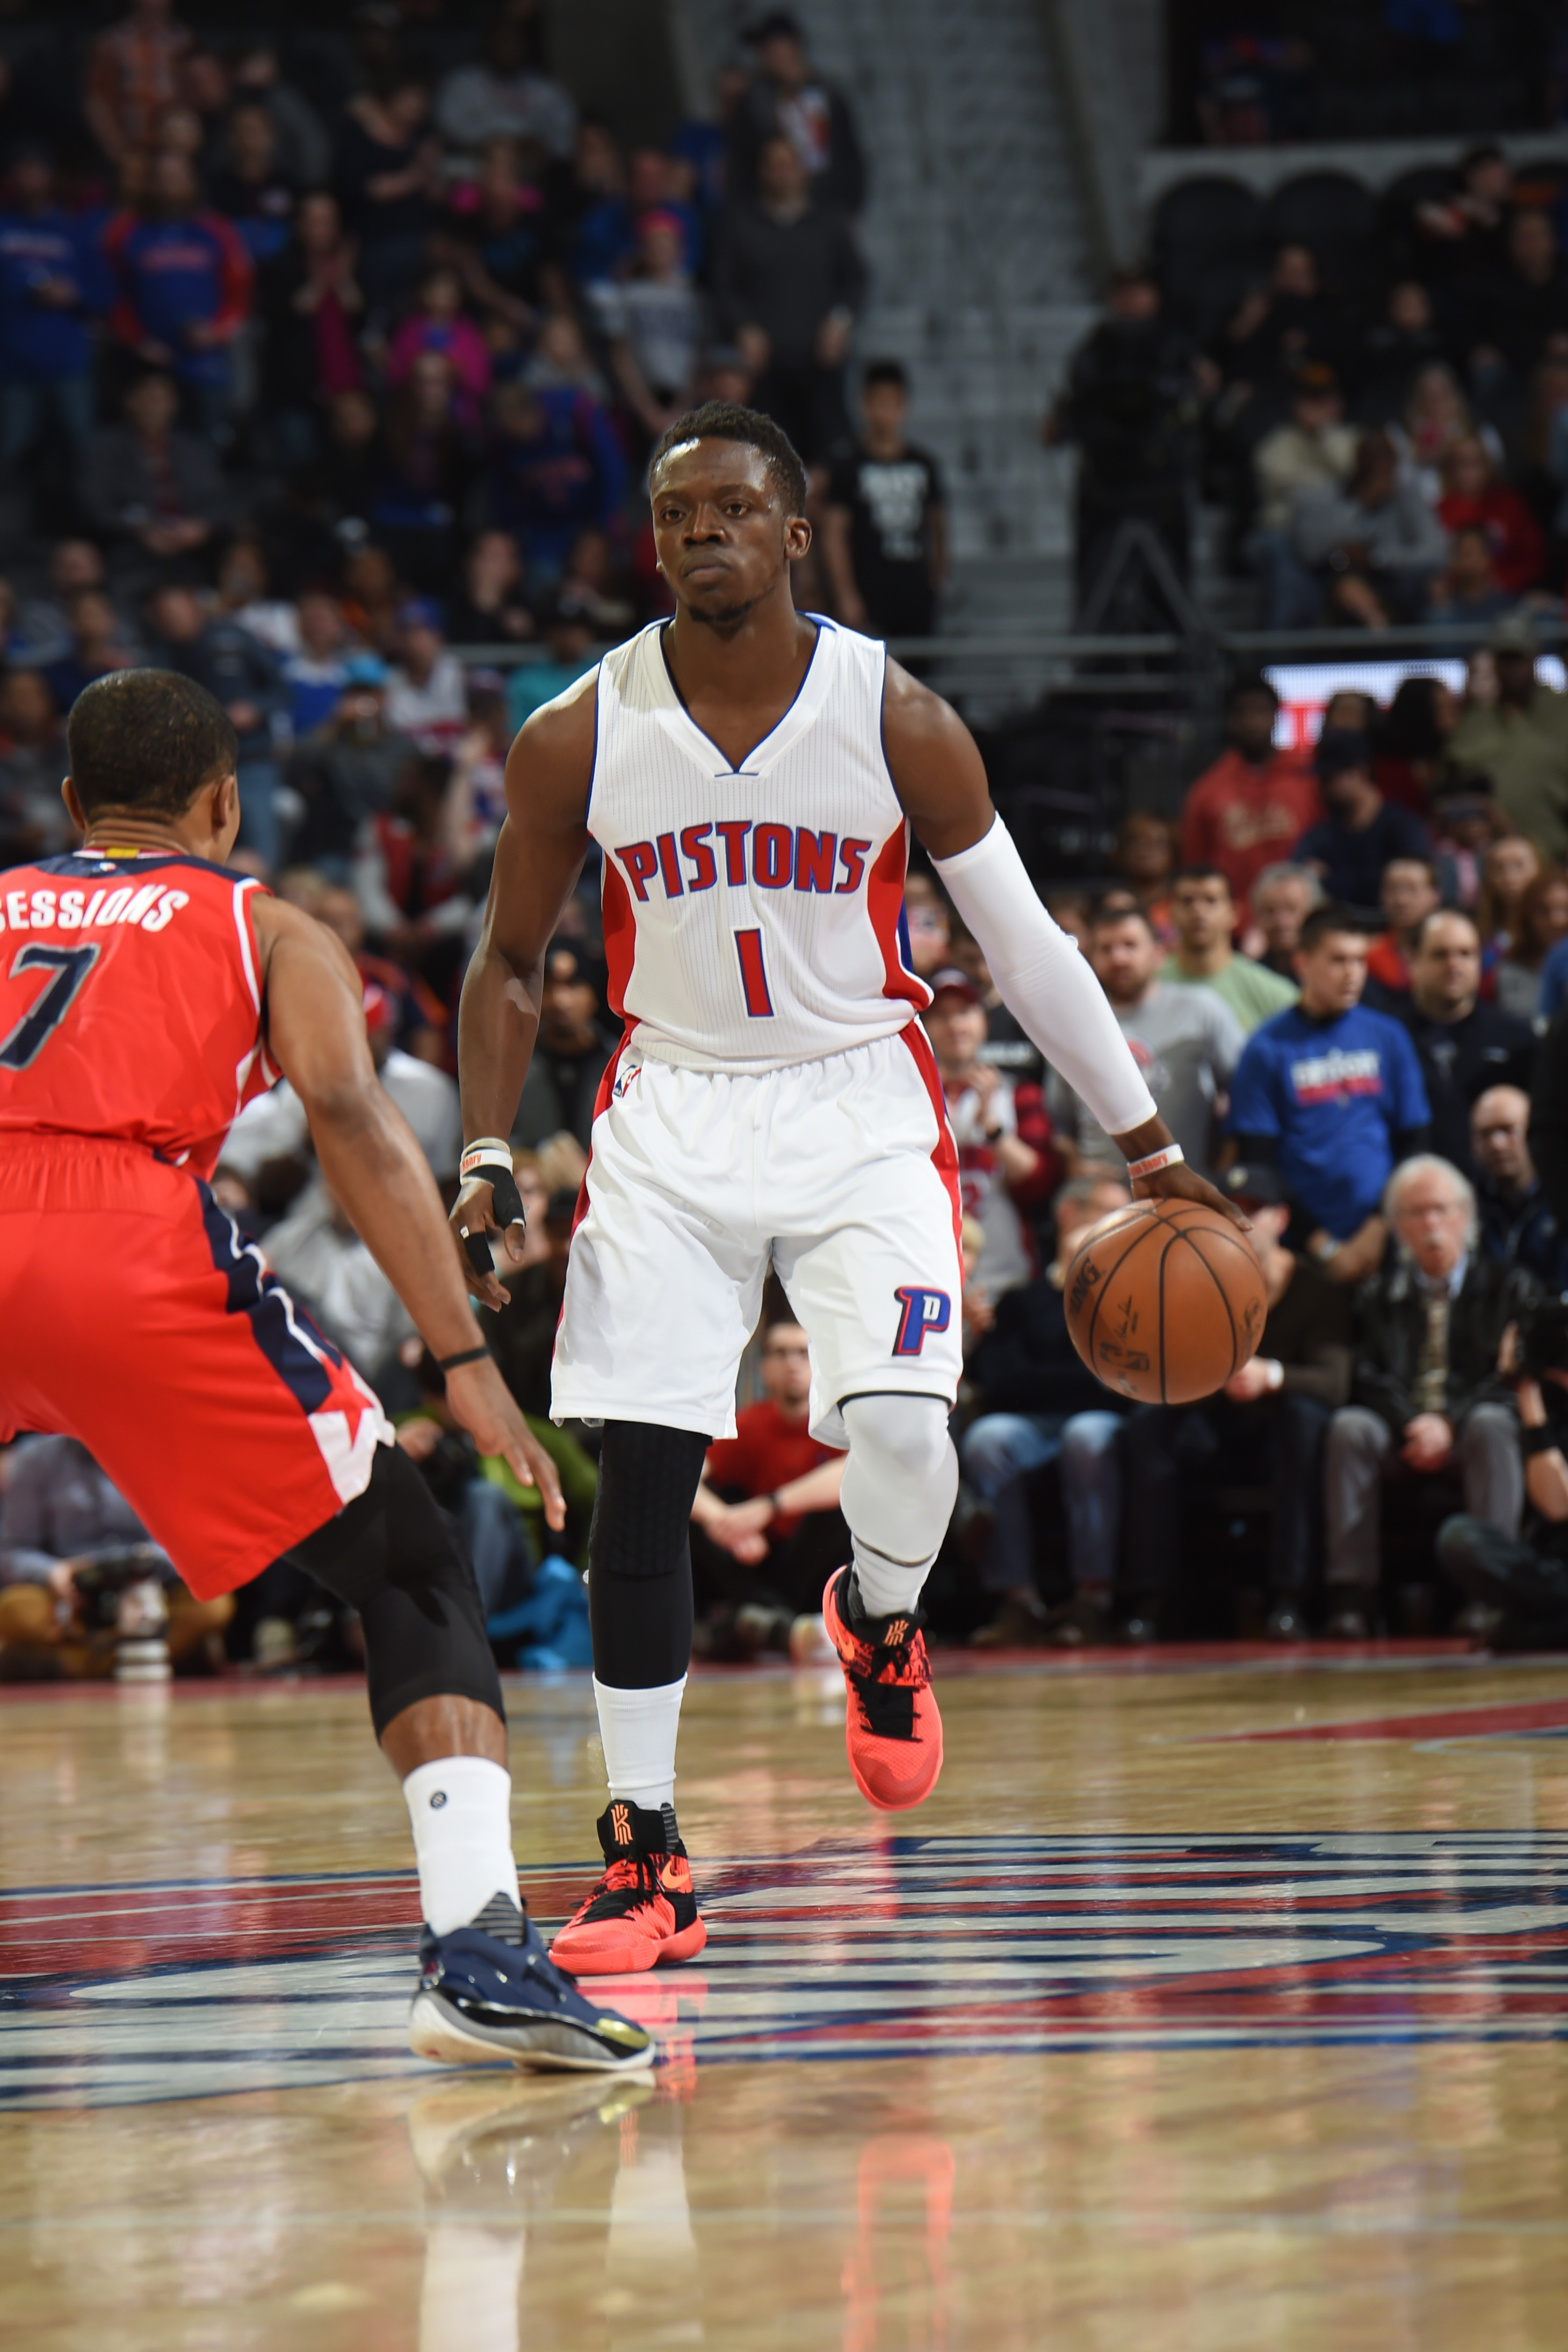 AUBURN HILLS, MI - APRIL 8:  Reggie Jackson #1 of the Detroit Pistons dribbles the ball against the Washington Wizards on April 8, 2016 at The Palace of Auburn Hills in Auburn Hills, Michigan. (Photo by Allen Einstein/NBAE via Getty Images)